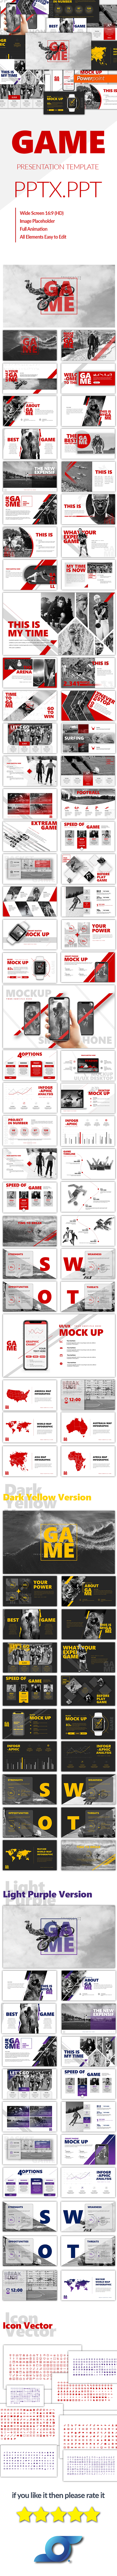 Game Powerpoint Templates - Business PowerPoint Templates